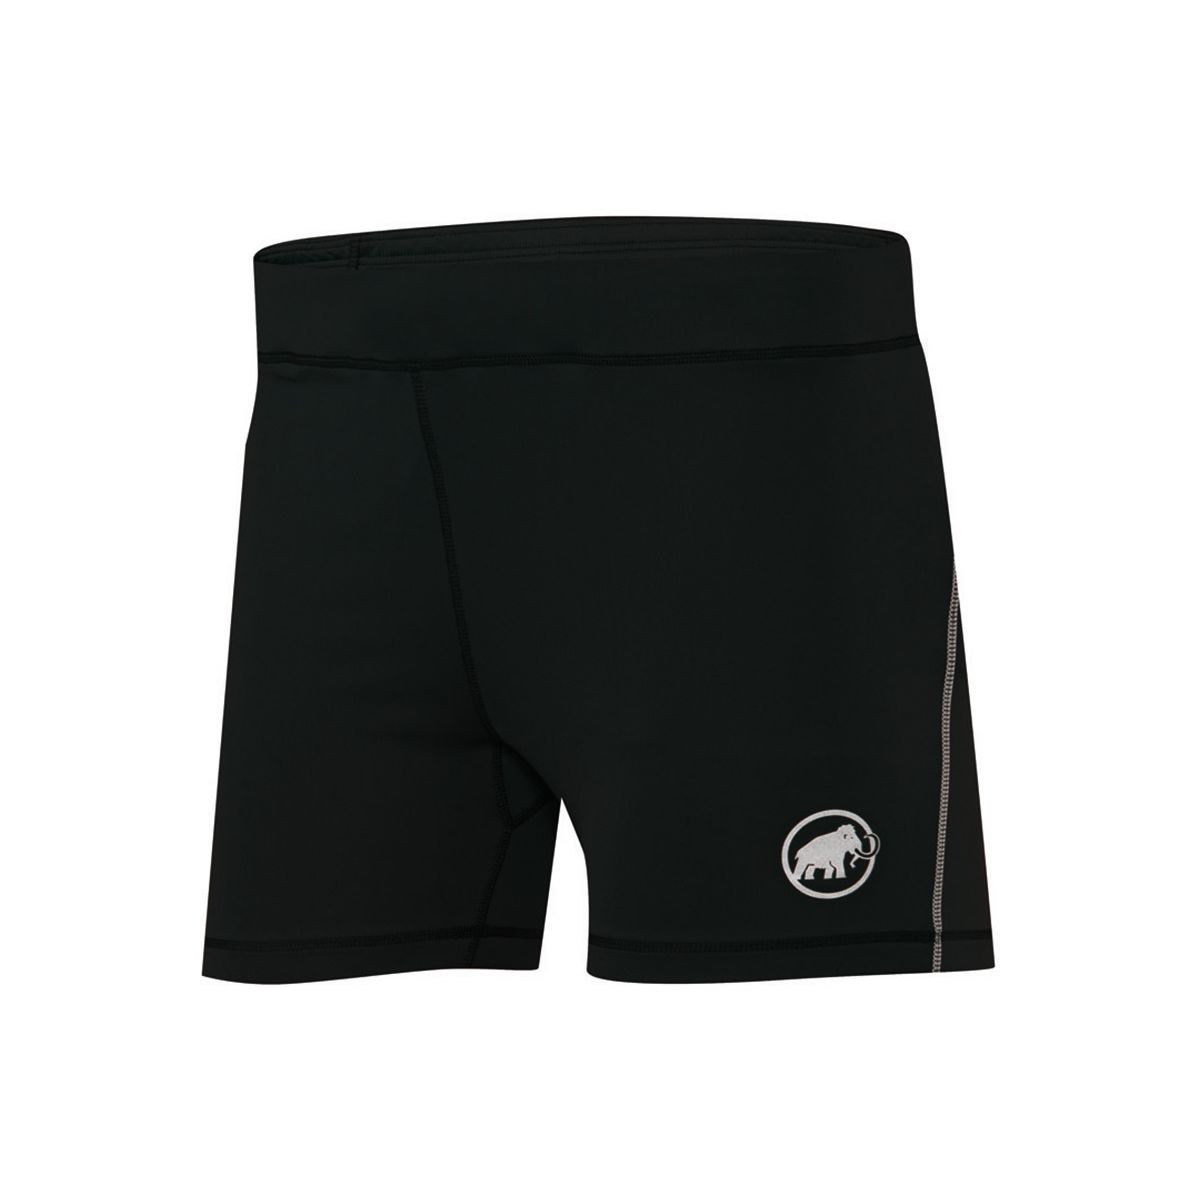 Mammut MTR 141 Tights Short